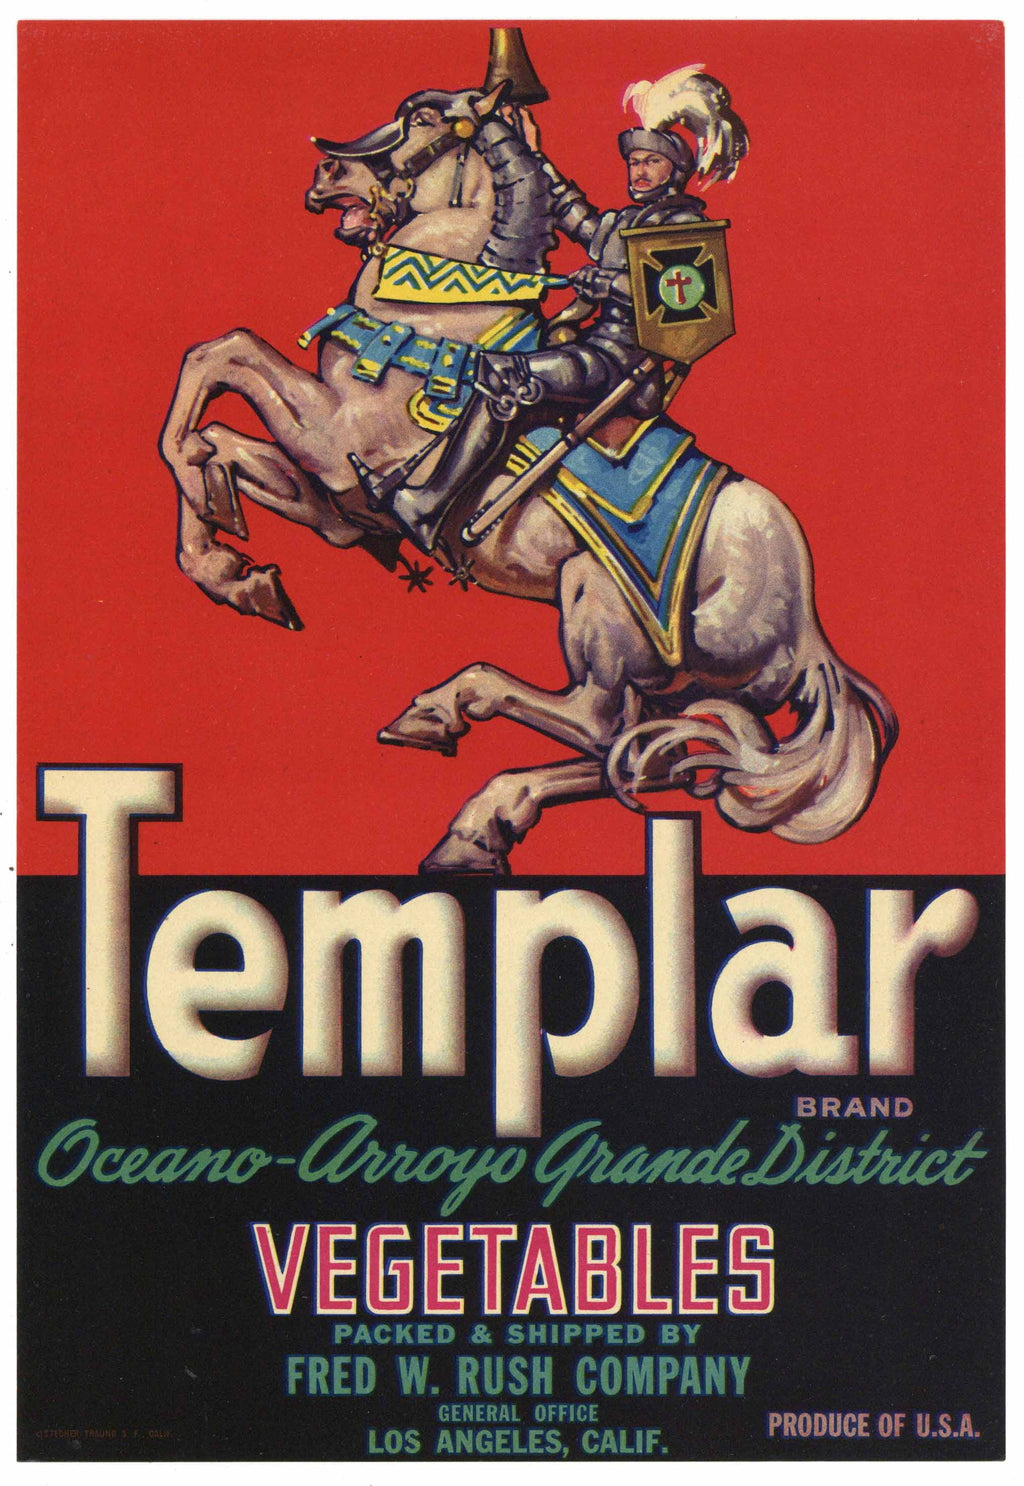 Templar Brand Vintage Vegetable Crate Label